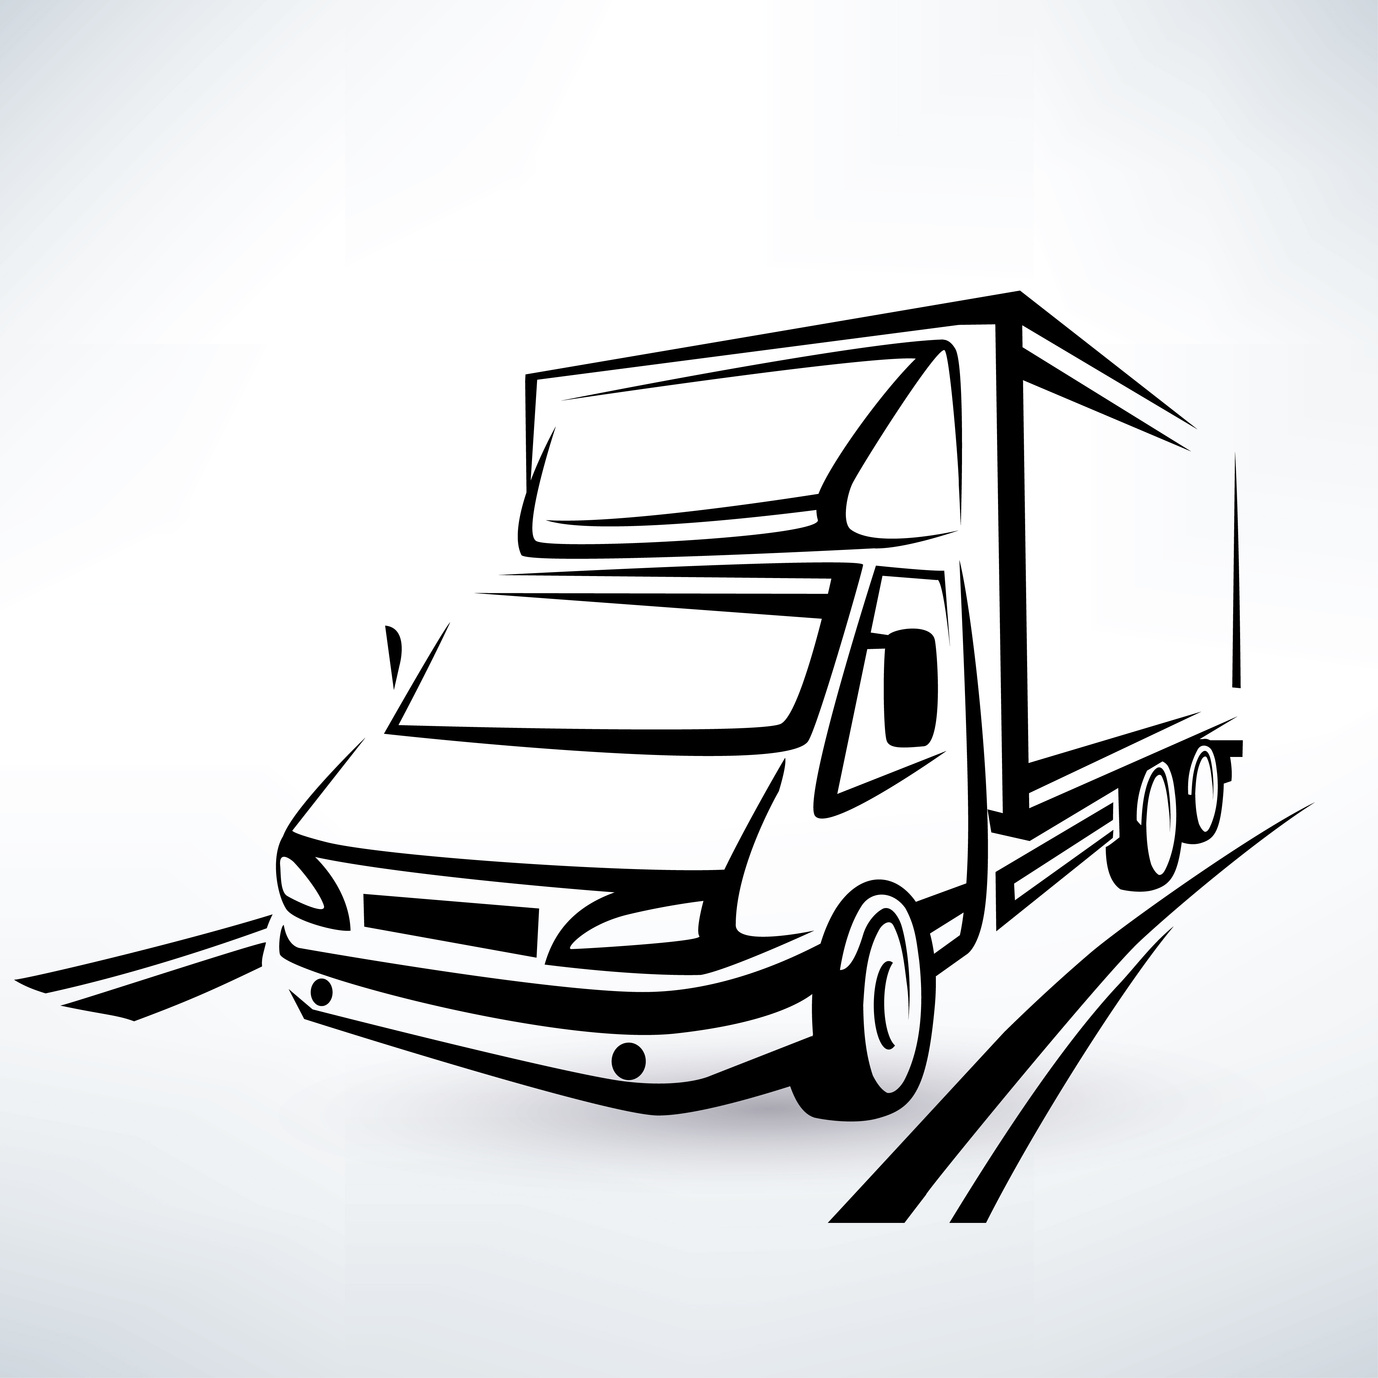 Illustration of a white van